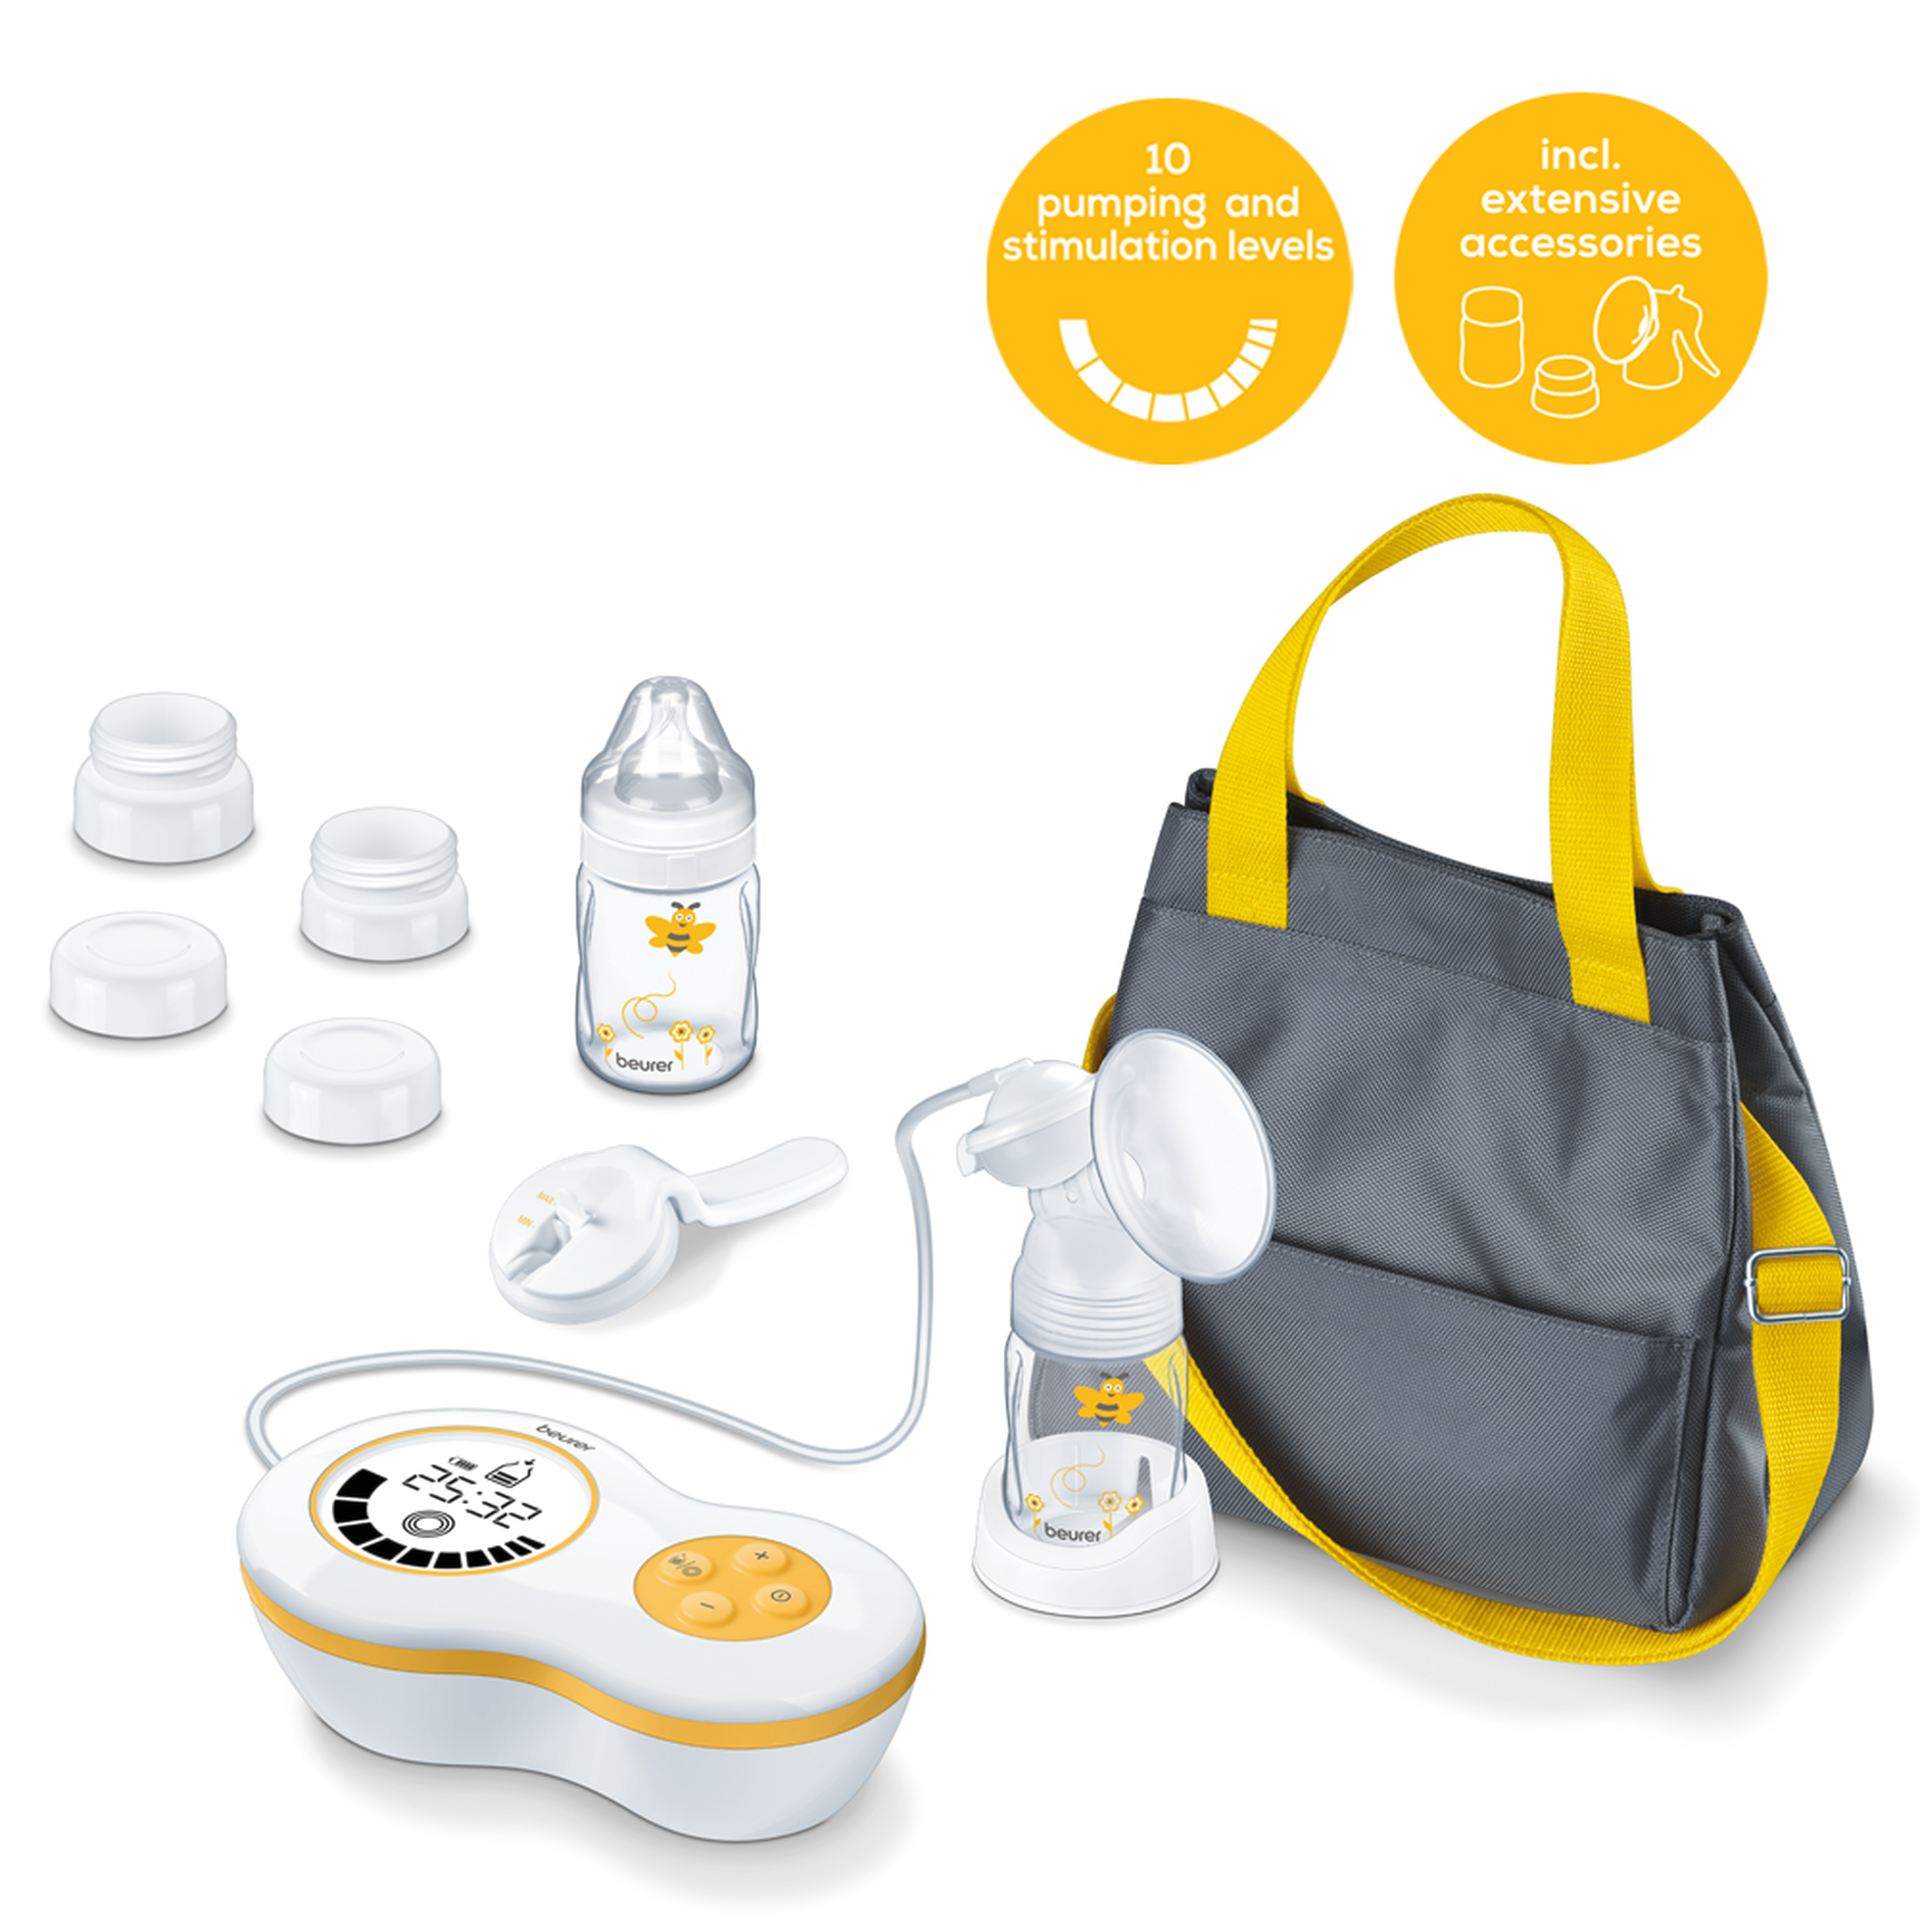 beurer-electrical-breast-pump-by-60-kuwait-online